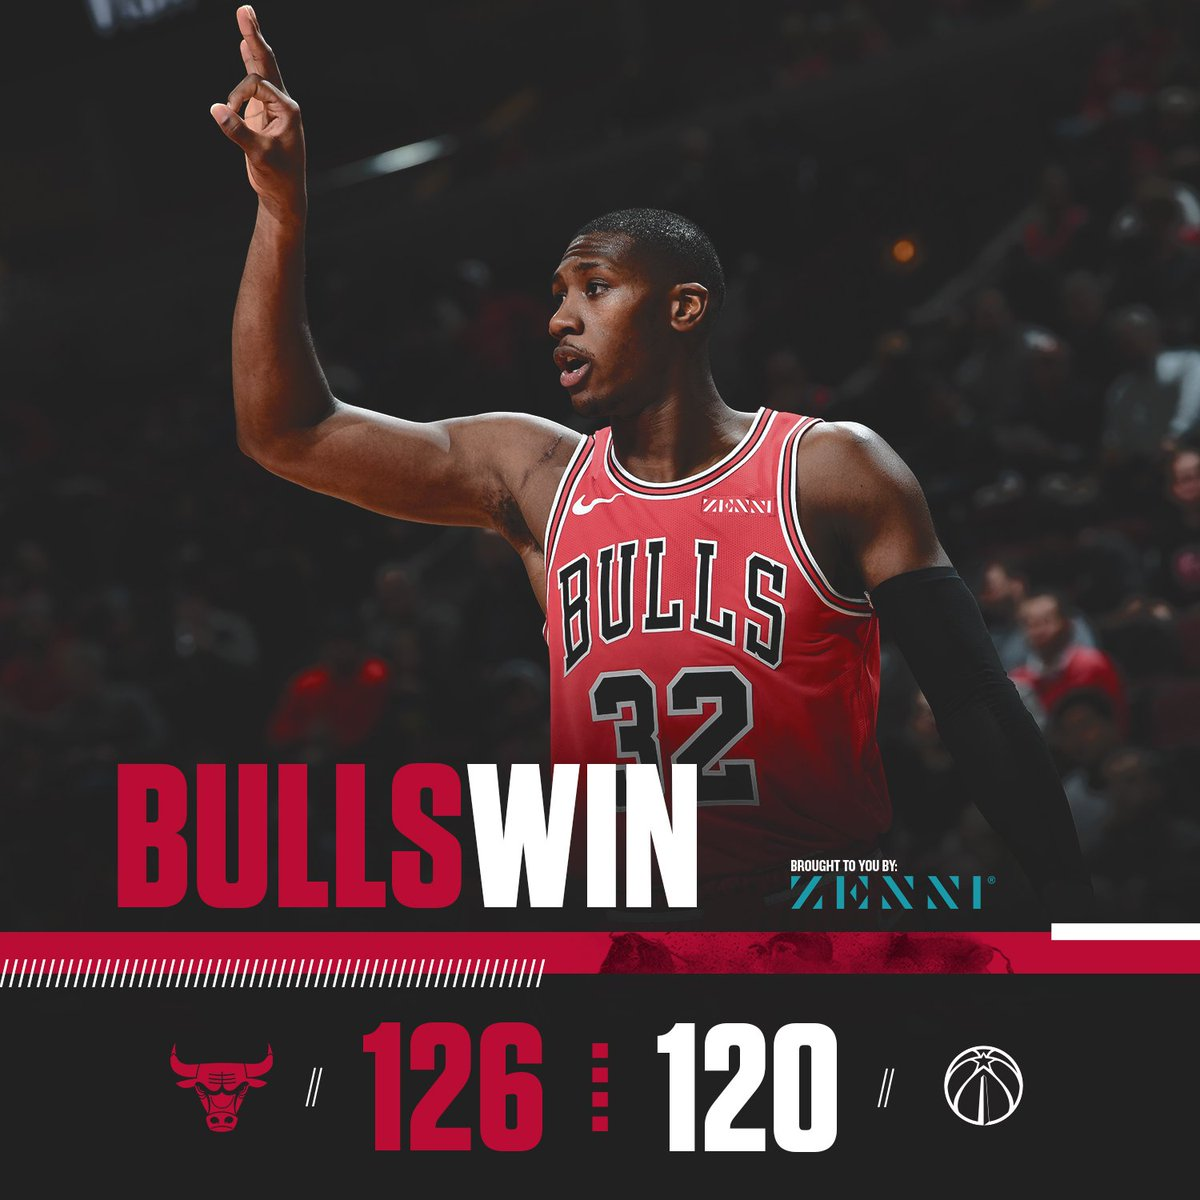 reputable site 1489c f0a32 Chicago Bulls on Twitter: